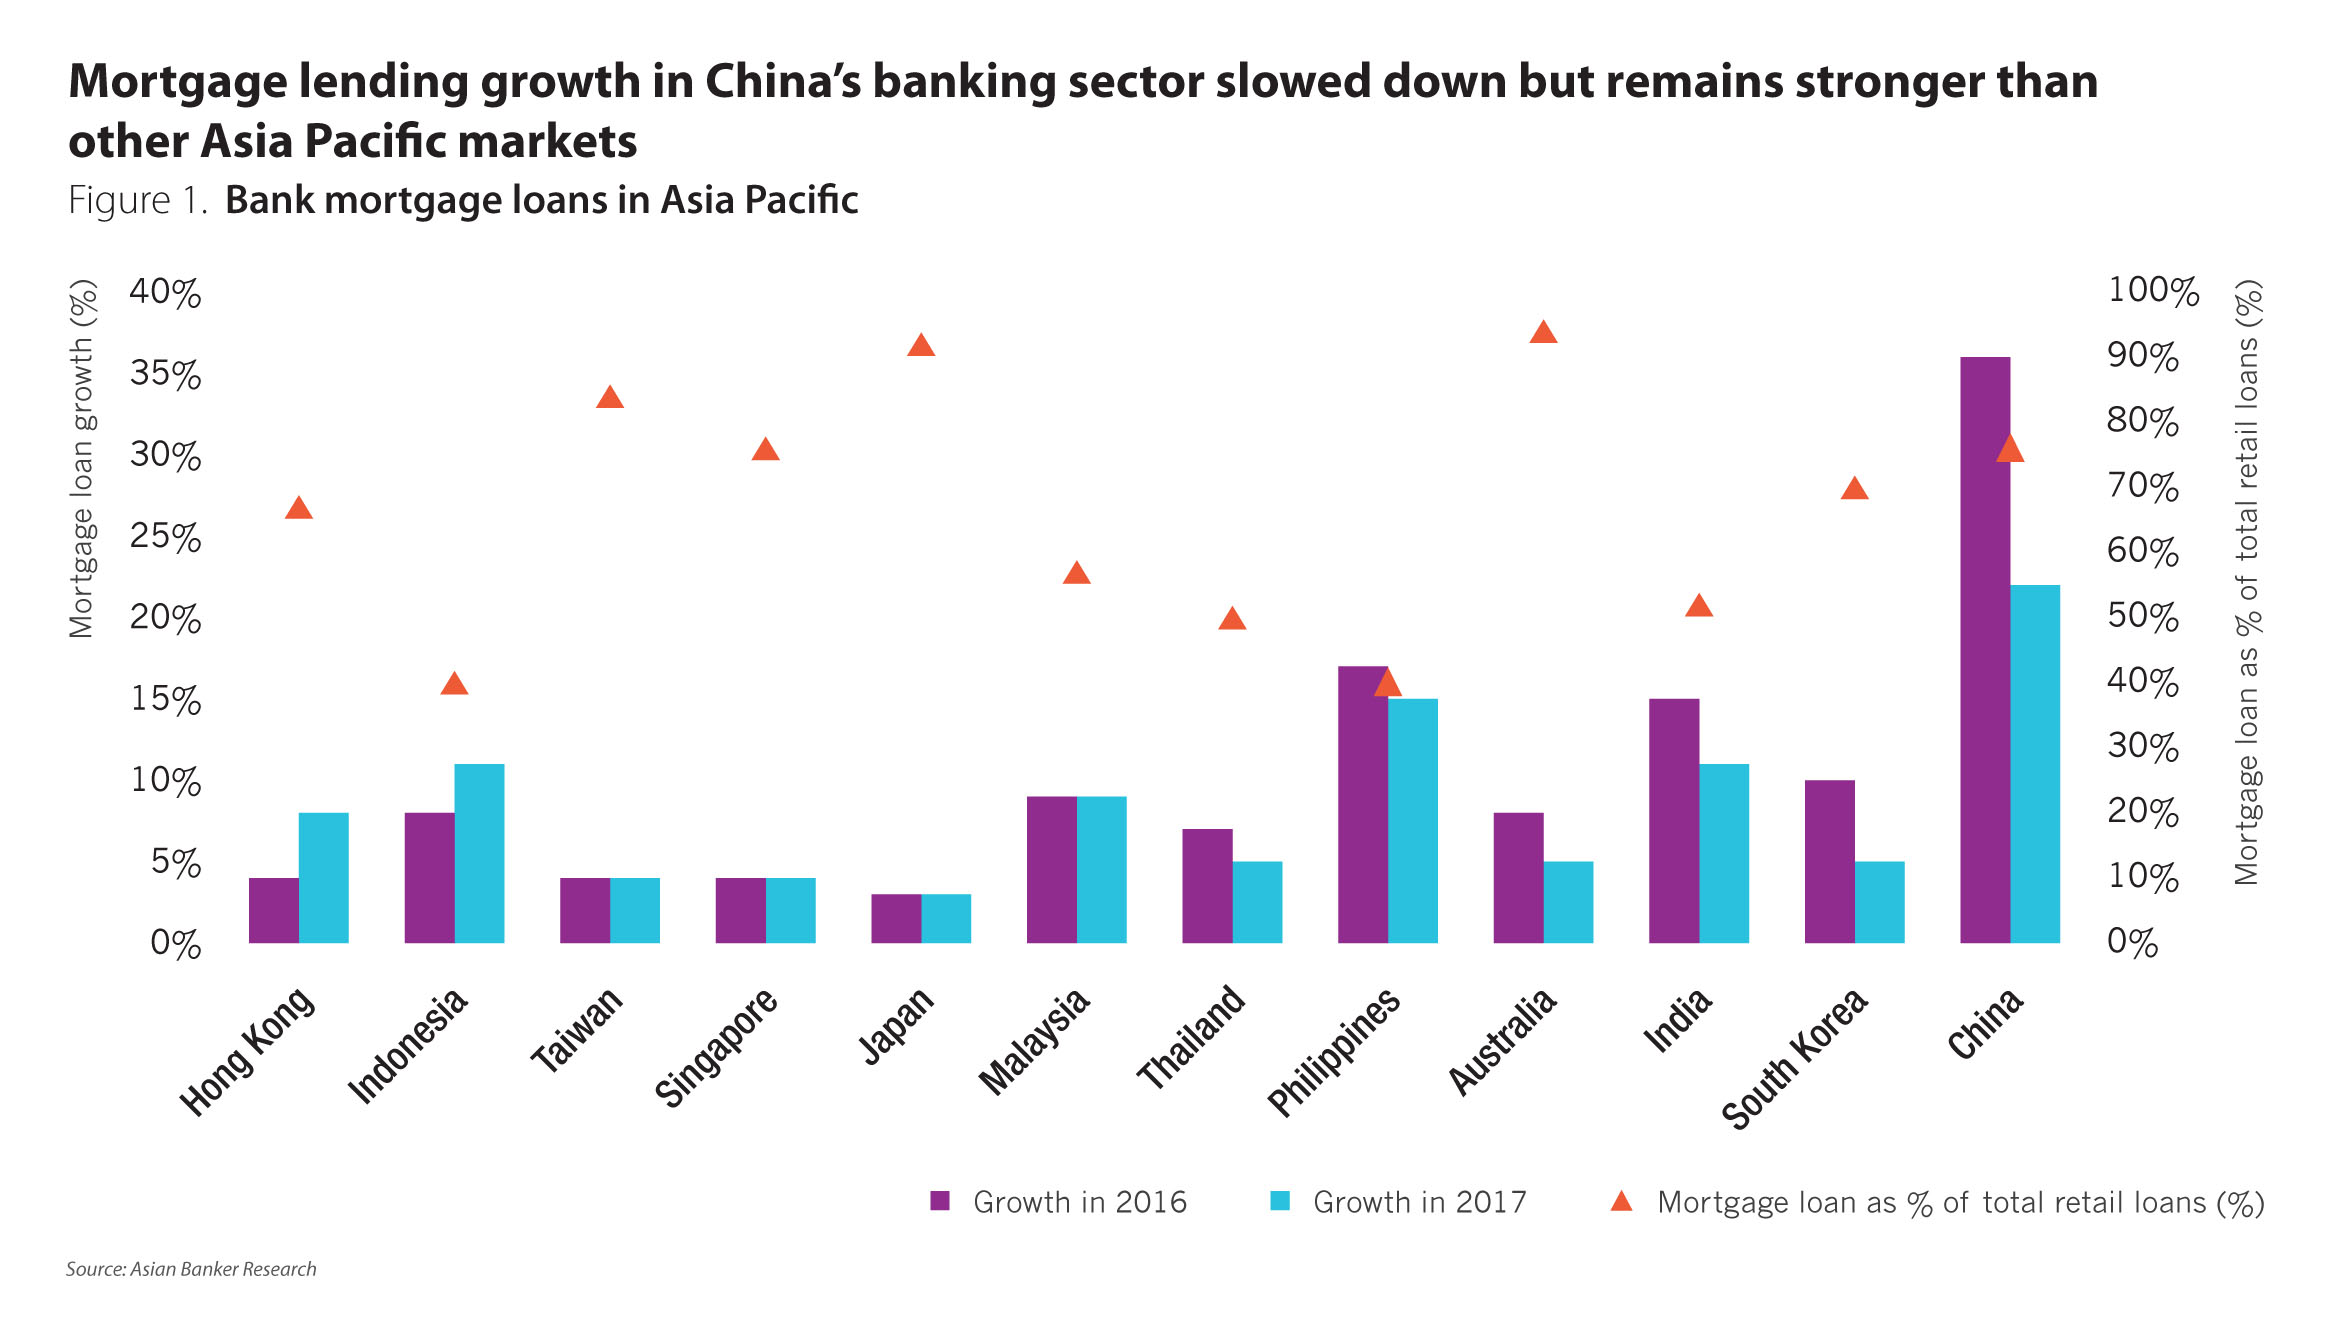 Mortgages in China and Hong Kong to witness moderate growth